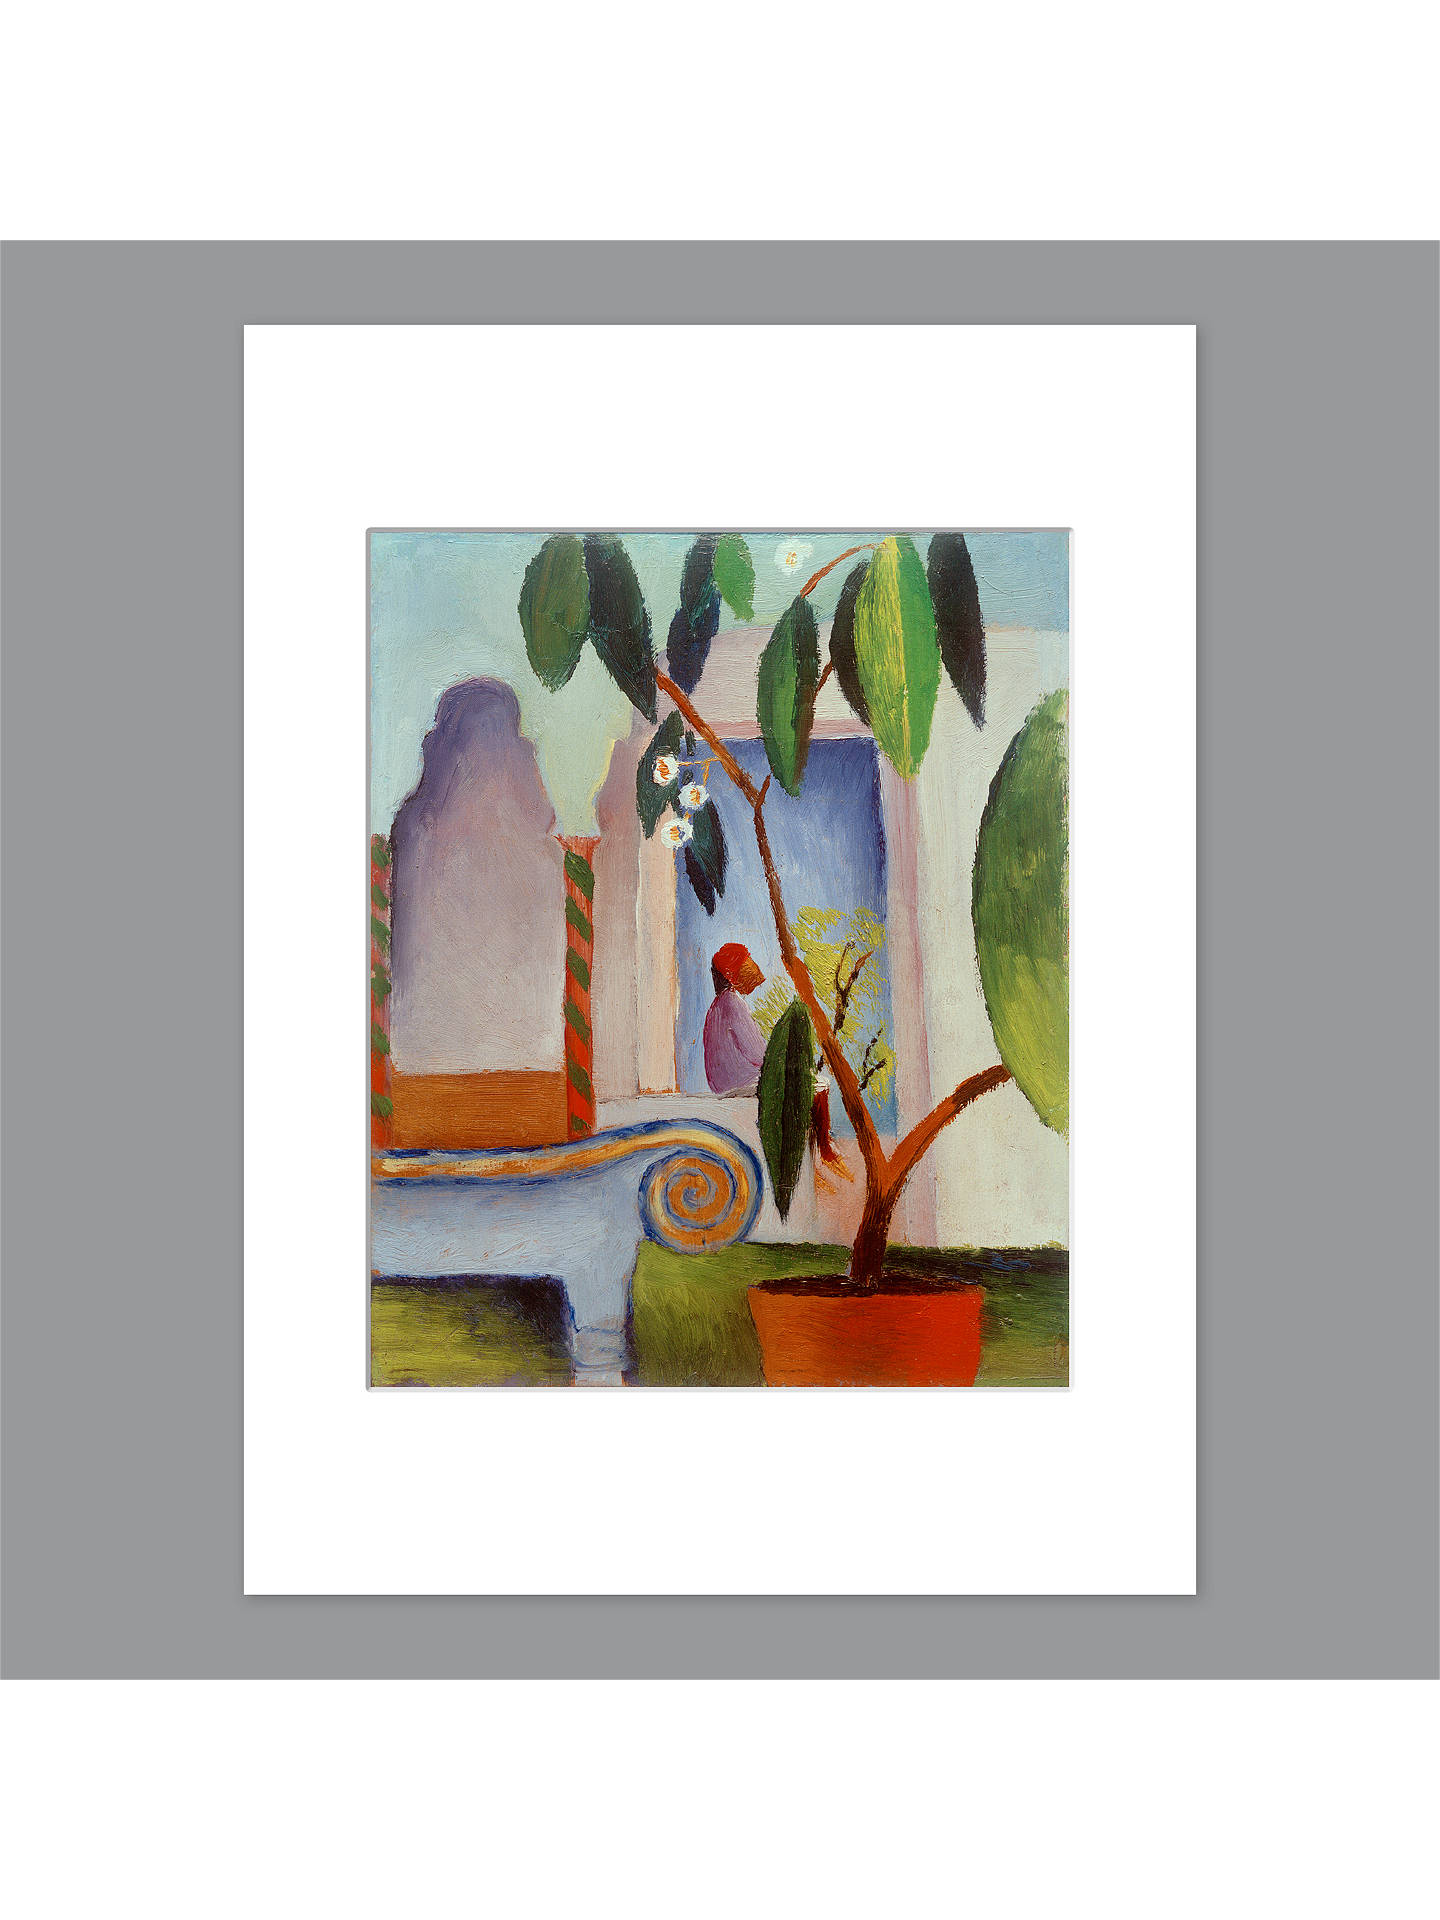 BuyAugust Macke - Arabic Cafe Unframed Print with Mount, 40 x 30cm Online at johnlewis.com